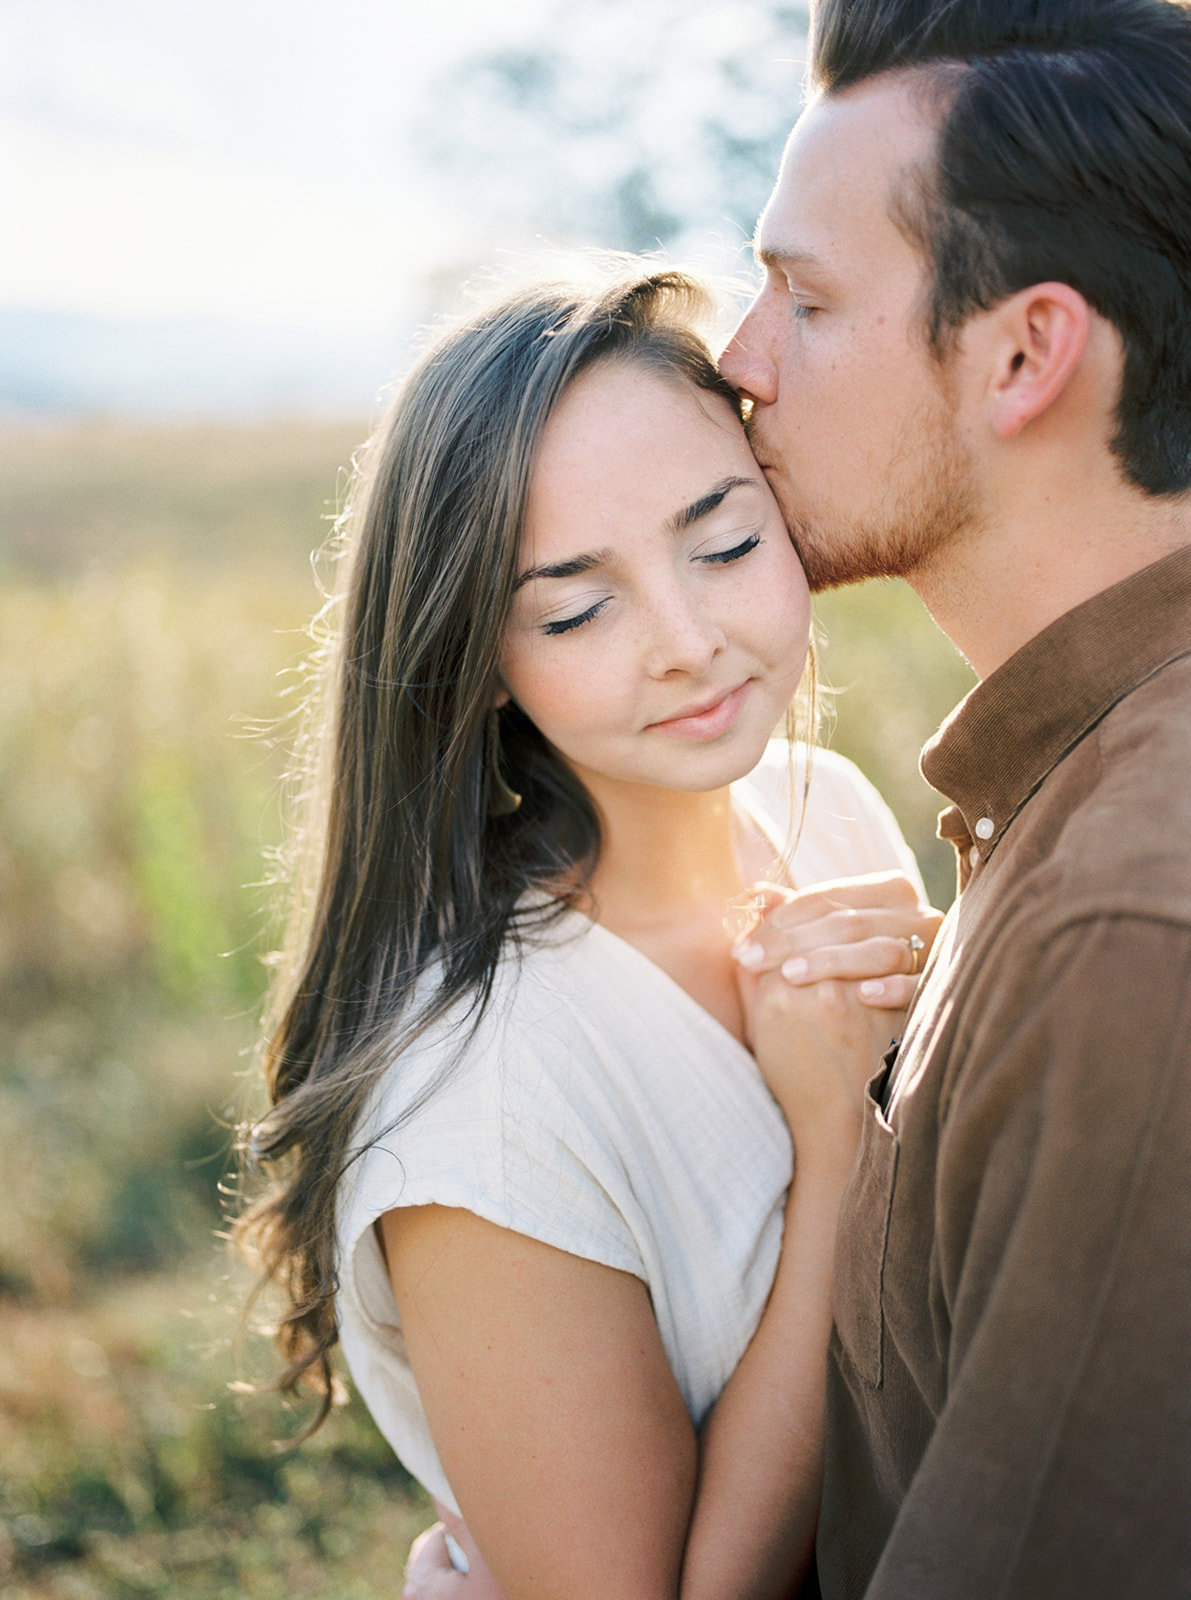 michela-brooke-photo-maryclaire-caleb-farm-engagement-11_websize